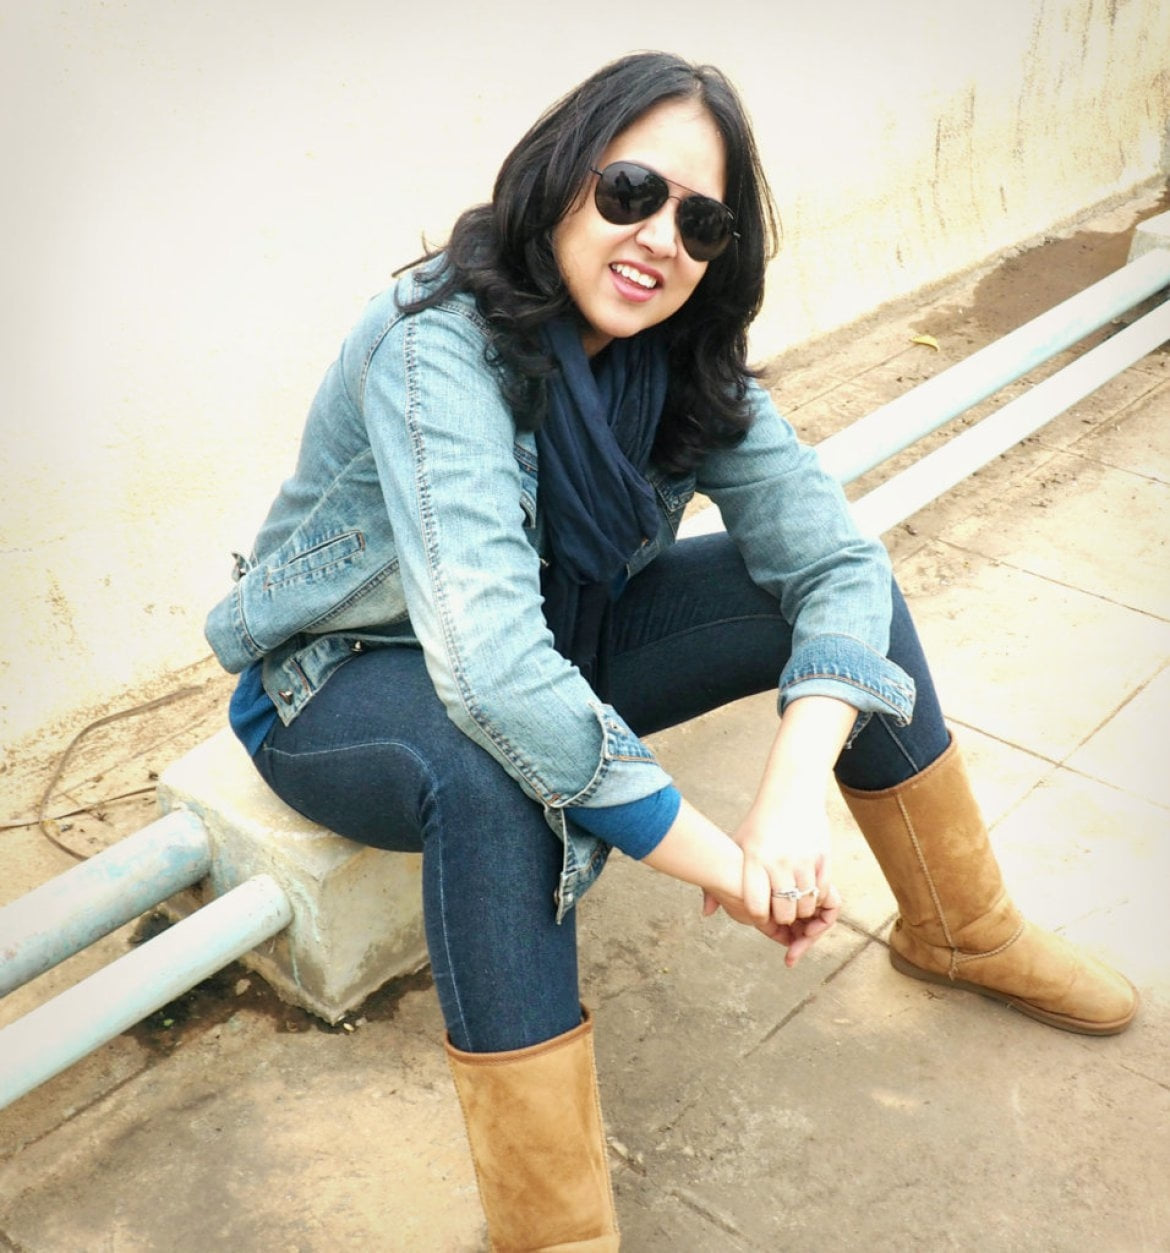 Pragati shows us how to carry a denim jacket this winter. Check the full story at http://beforbeauty.com/winter-fashion-denim/   :D  #fashion #fashionblogger #fashionblog #women-fashion #fashioncity #fashion-diva #fashionbloggerindia #ootd #winterstyle #winterstylefiles #swiss #swissblogger #swissblog #roposolove #roposofashion #roposofollow #follow #followmeonroposo